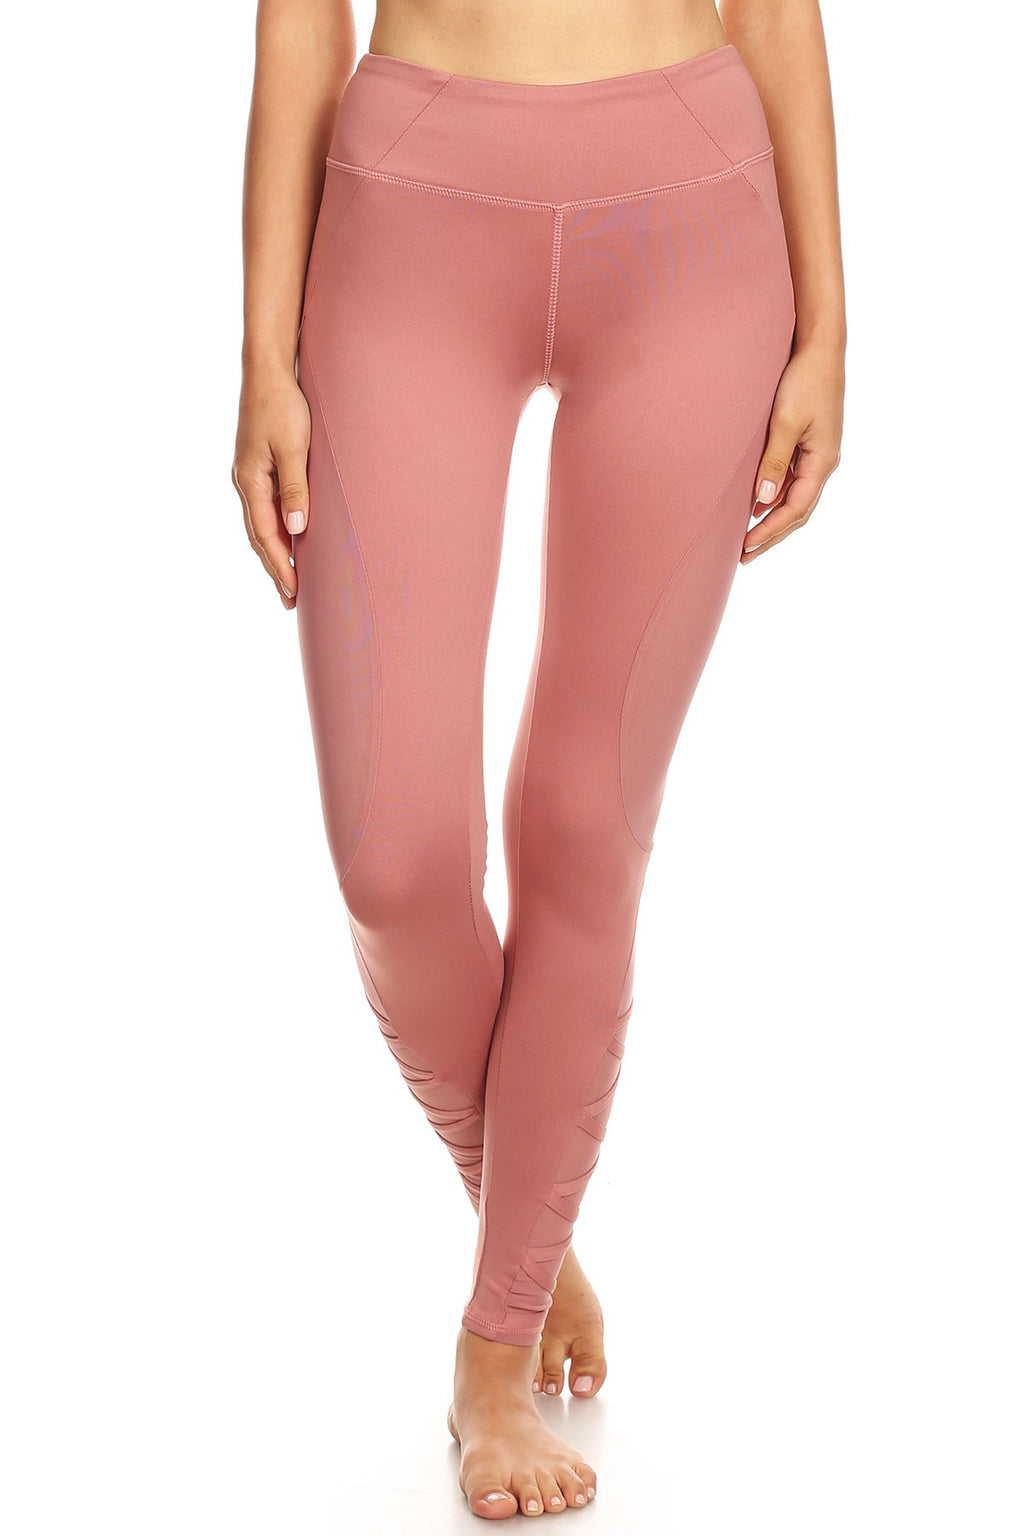 Dusty Rose YogaPant with Ballerina lace detail at bottom